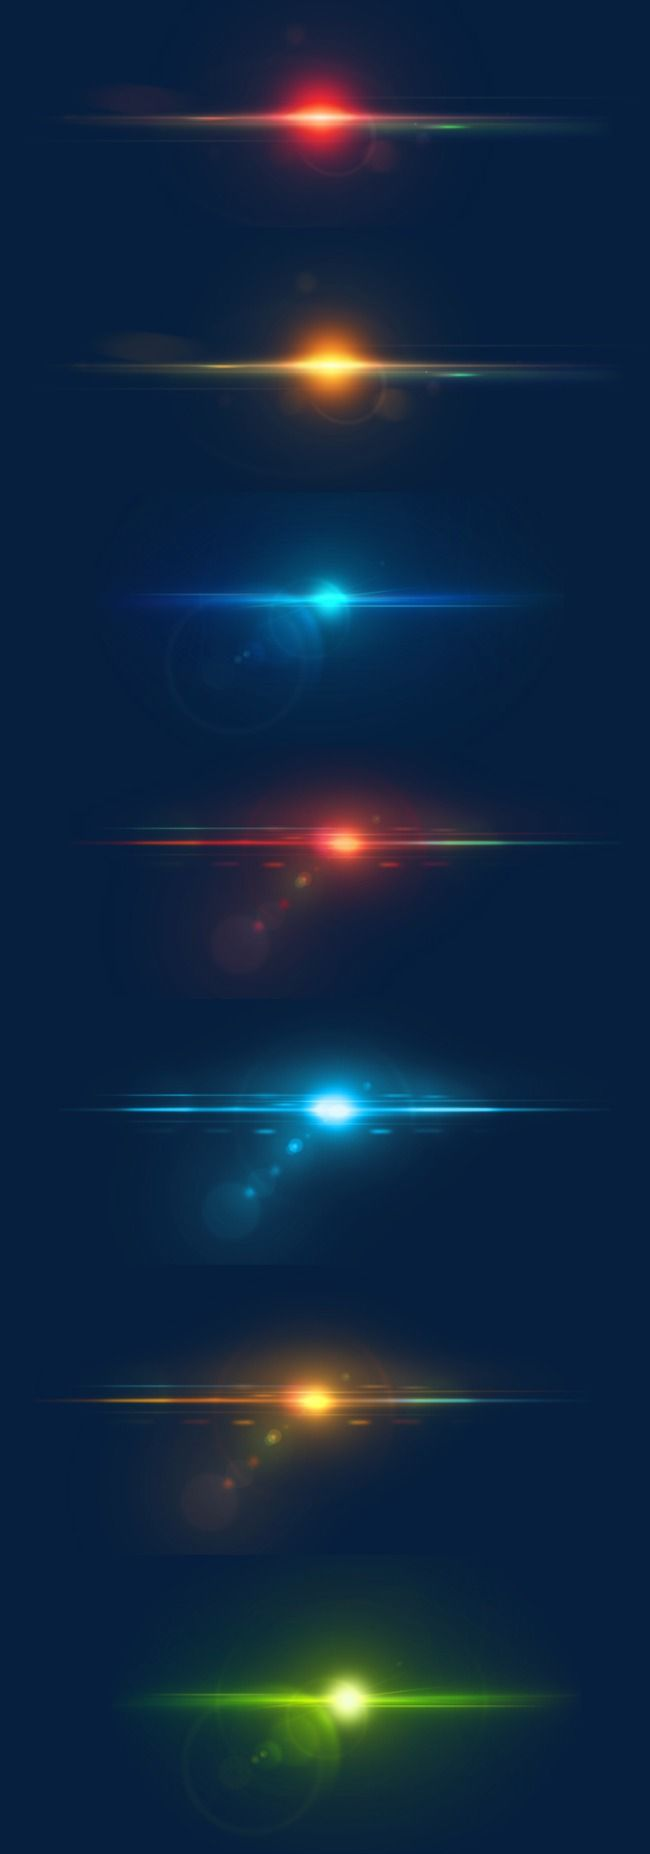 Cool Light Effects Color Colorful Lights Decoration Png Transparent Clipart Image And Psd File For Free Download Photoshop Design Light Effect Photoshop Images